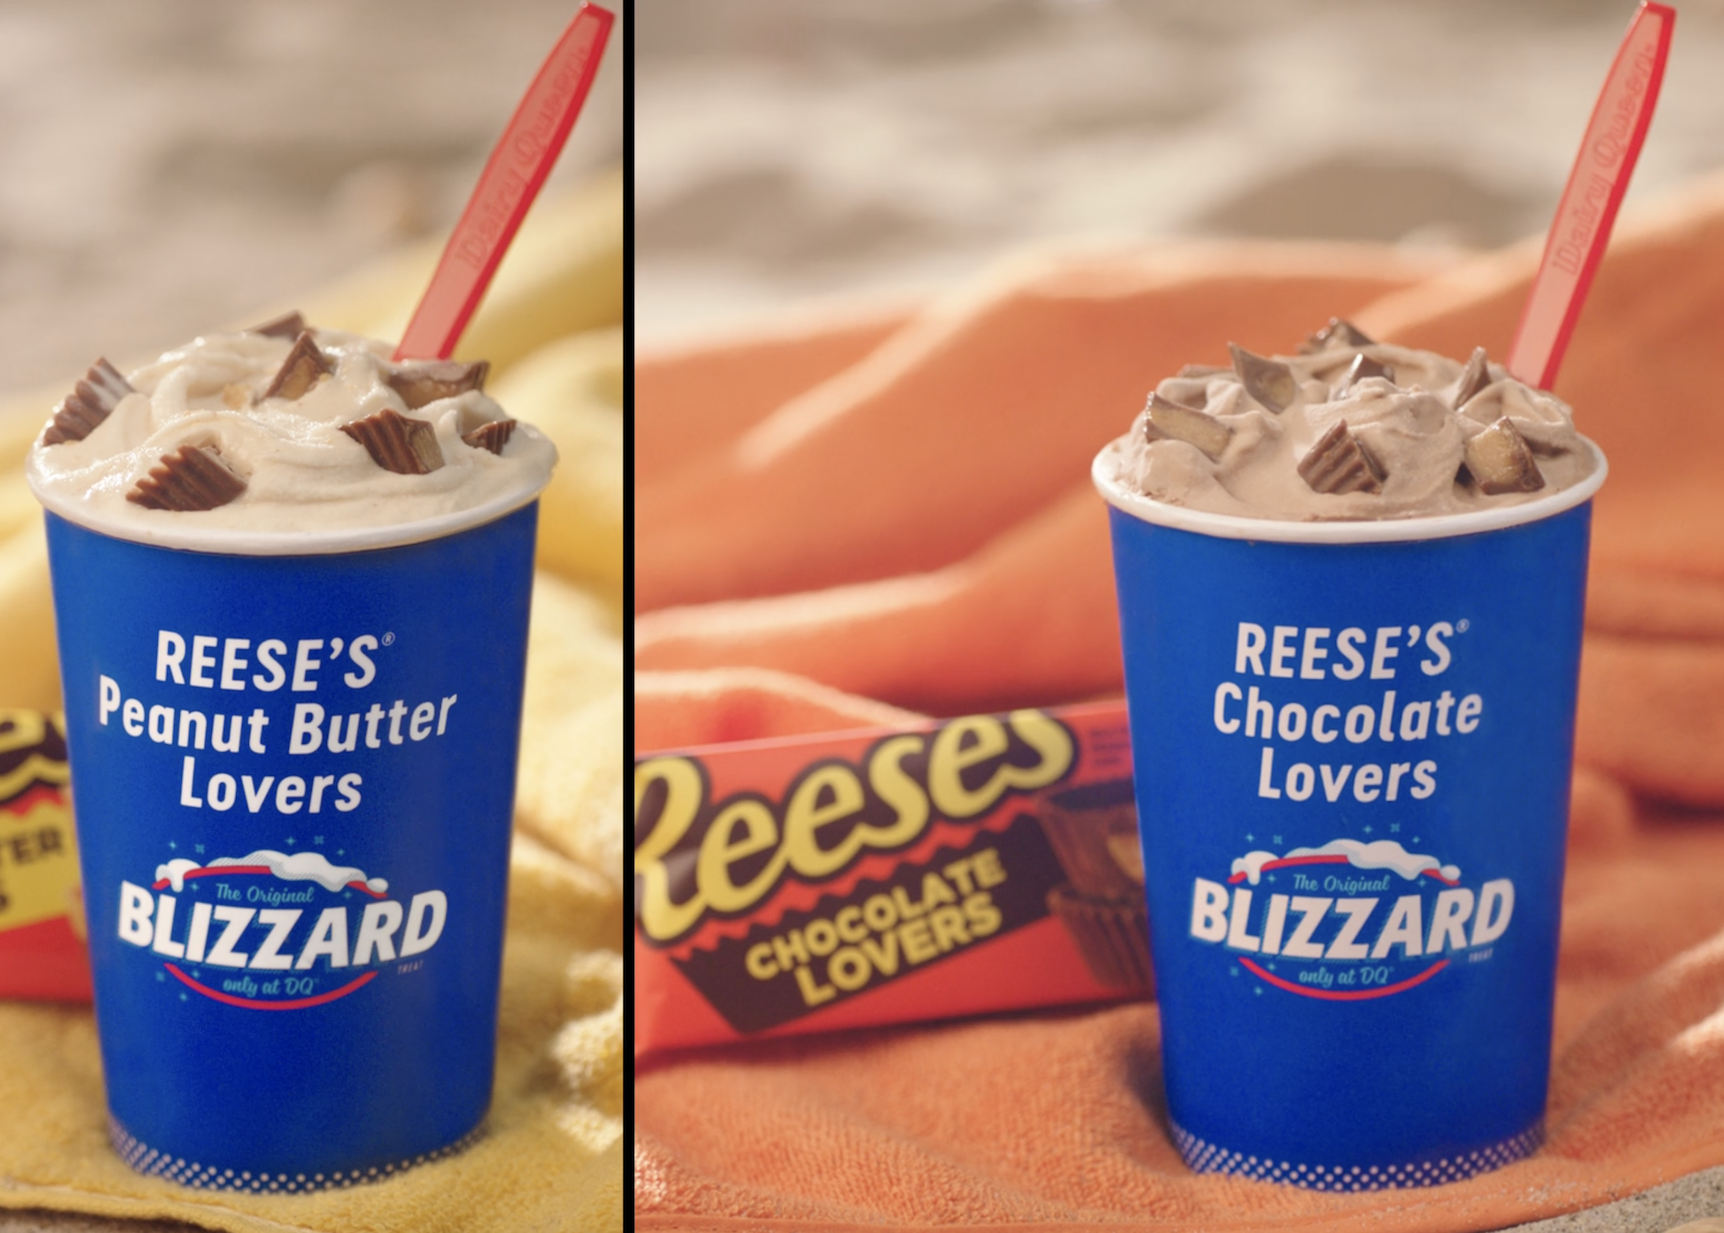 reesesblizzards